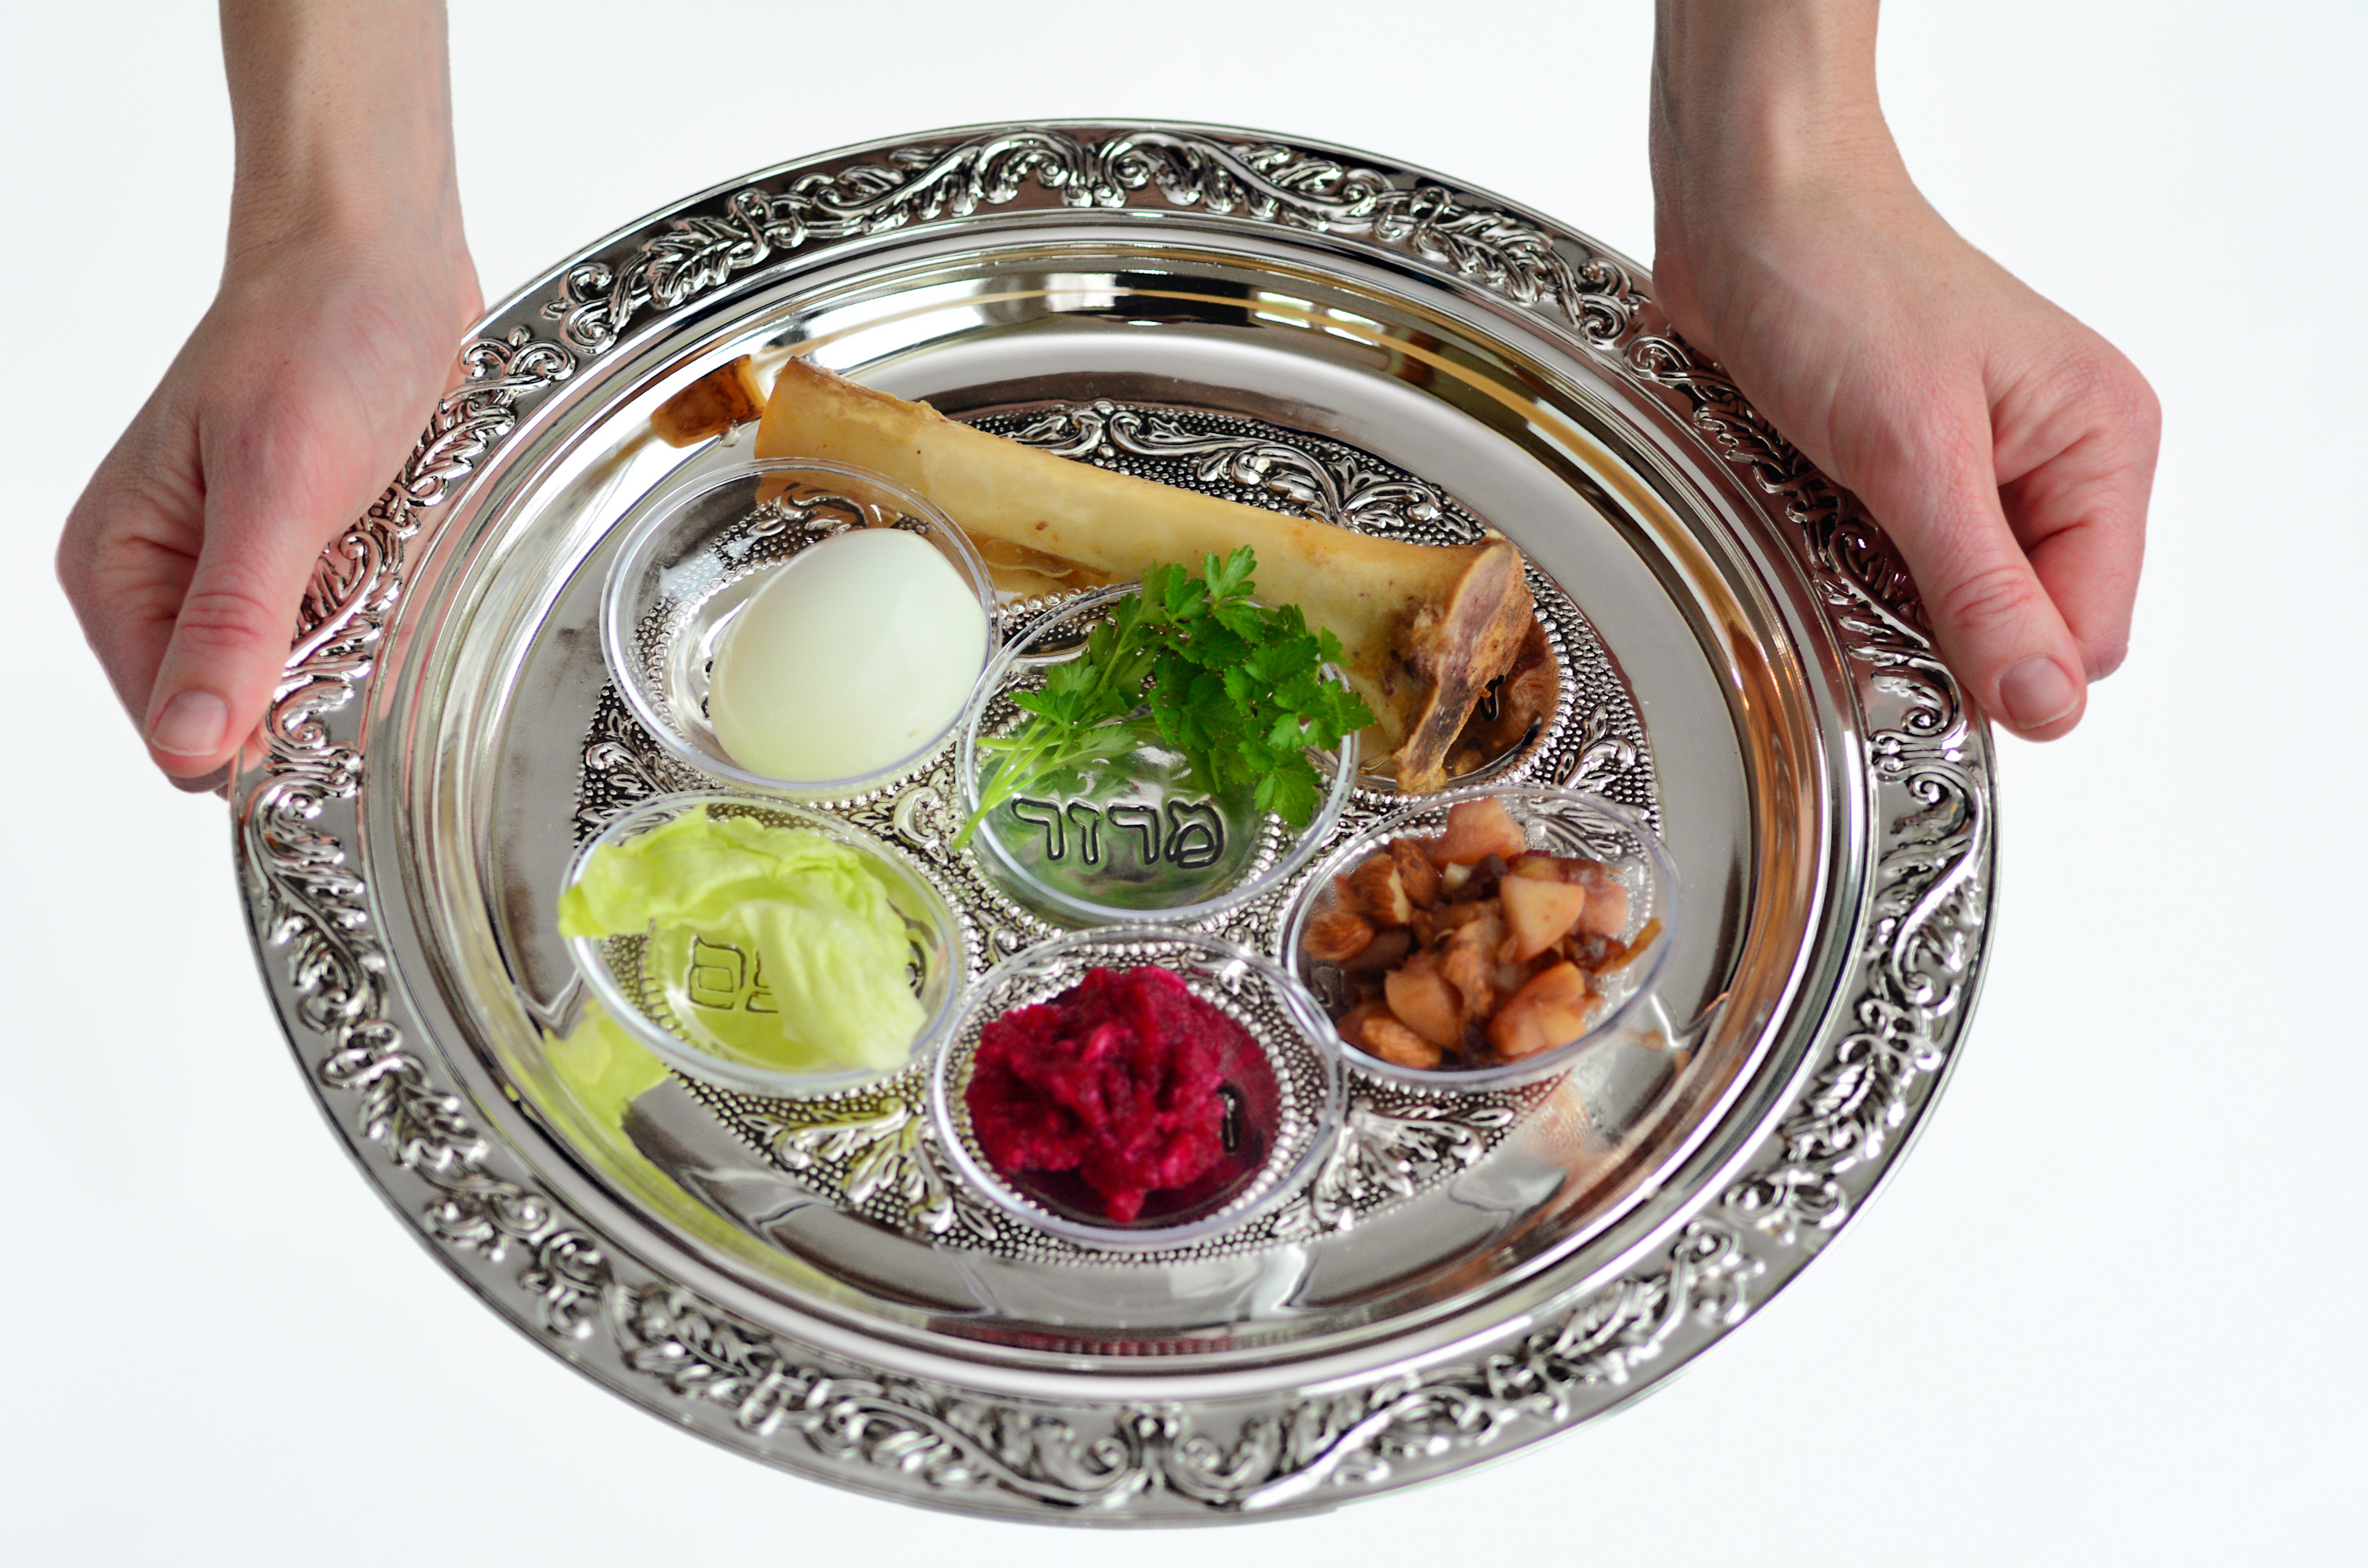 The Passover Seder Plate More Than Just A Judaic